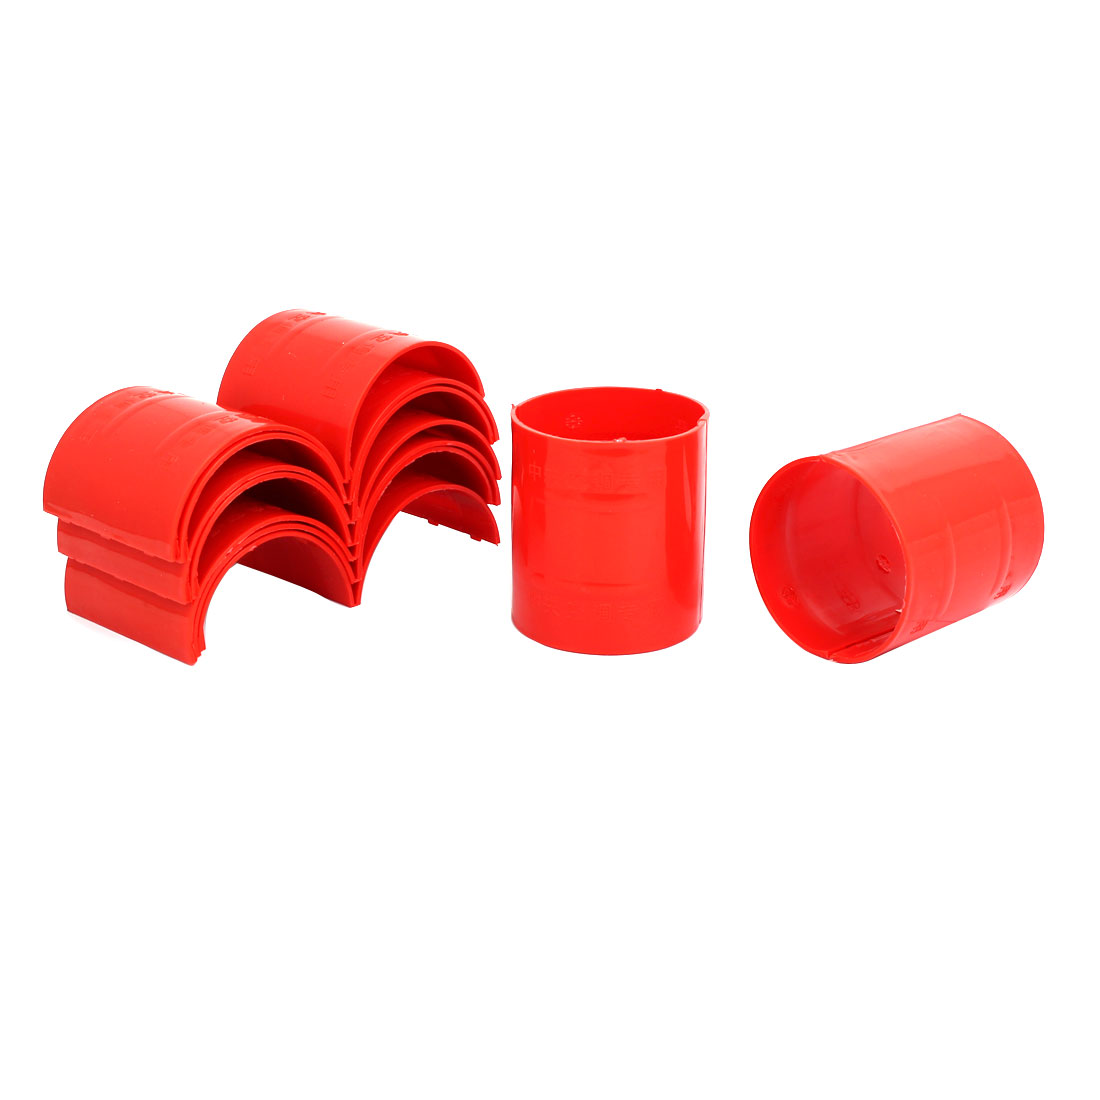 75mm Dia 2mm Thickness Central Air Conditioning Pipe Tube Clamp Red 9pcs